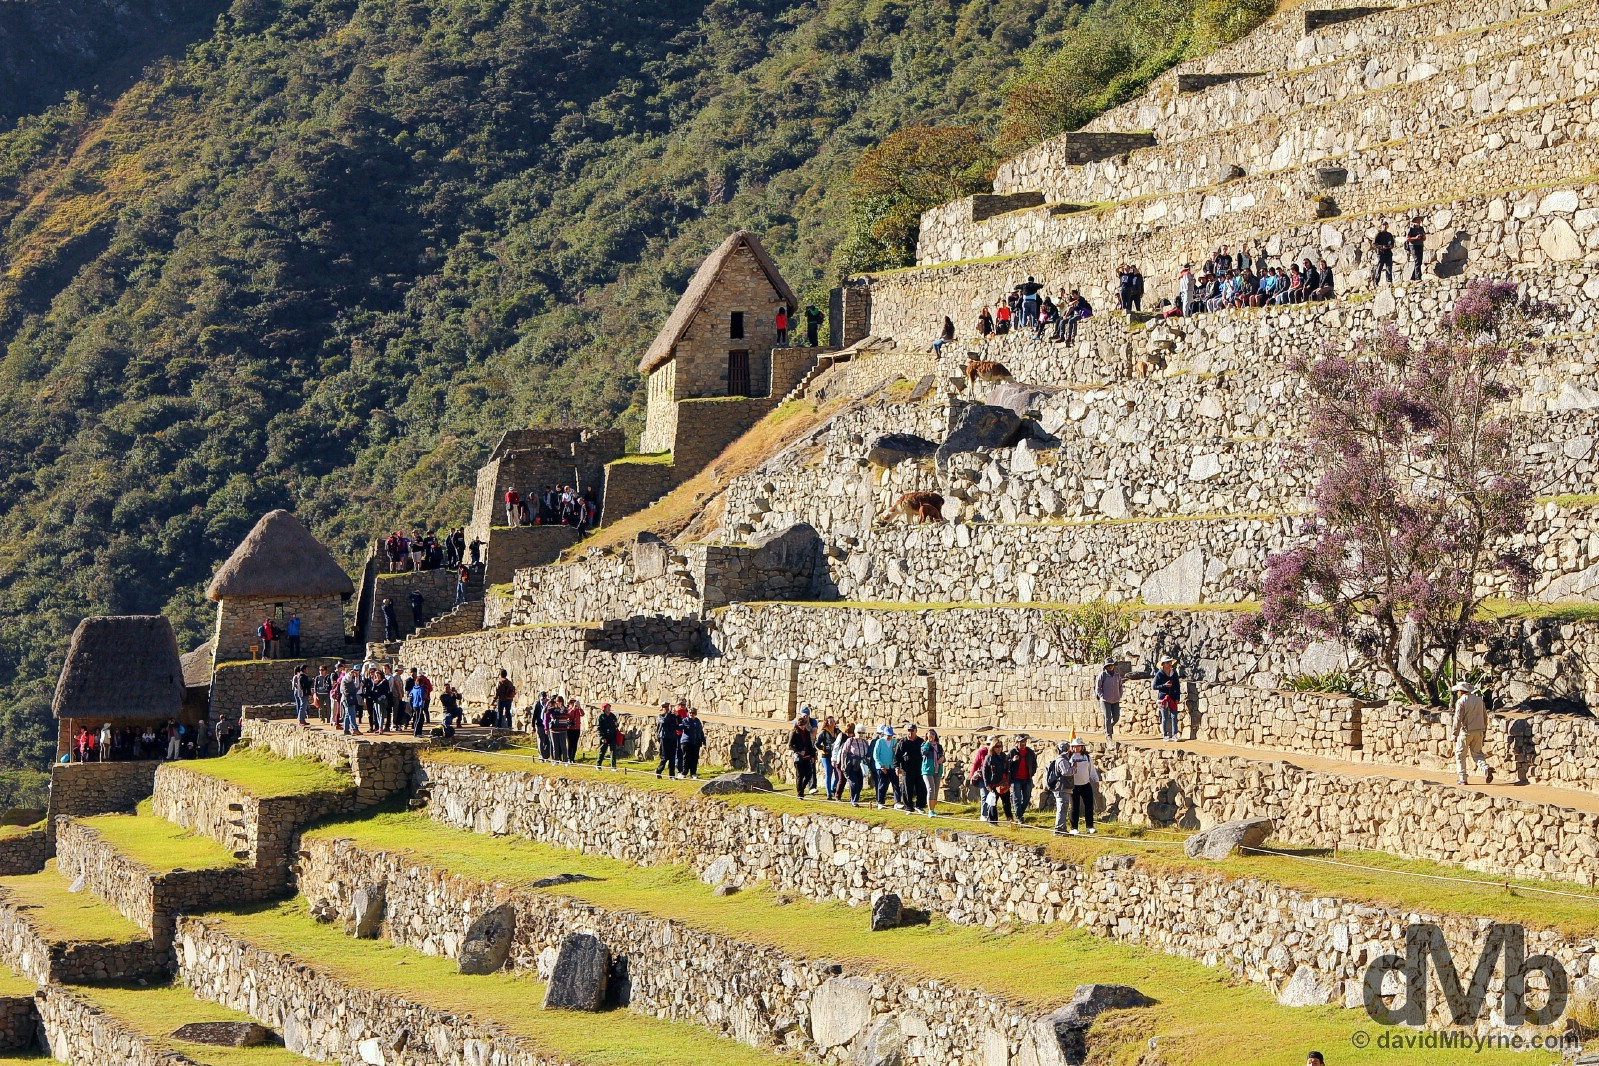 Shortly after sunrise on the terraces of the Eastern Agricultural Sector in Machu Picchu, Peru. August 15, 2015.